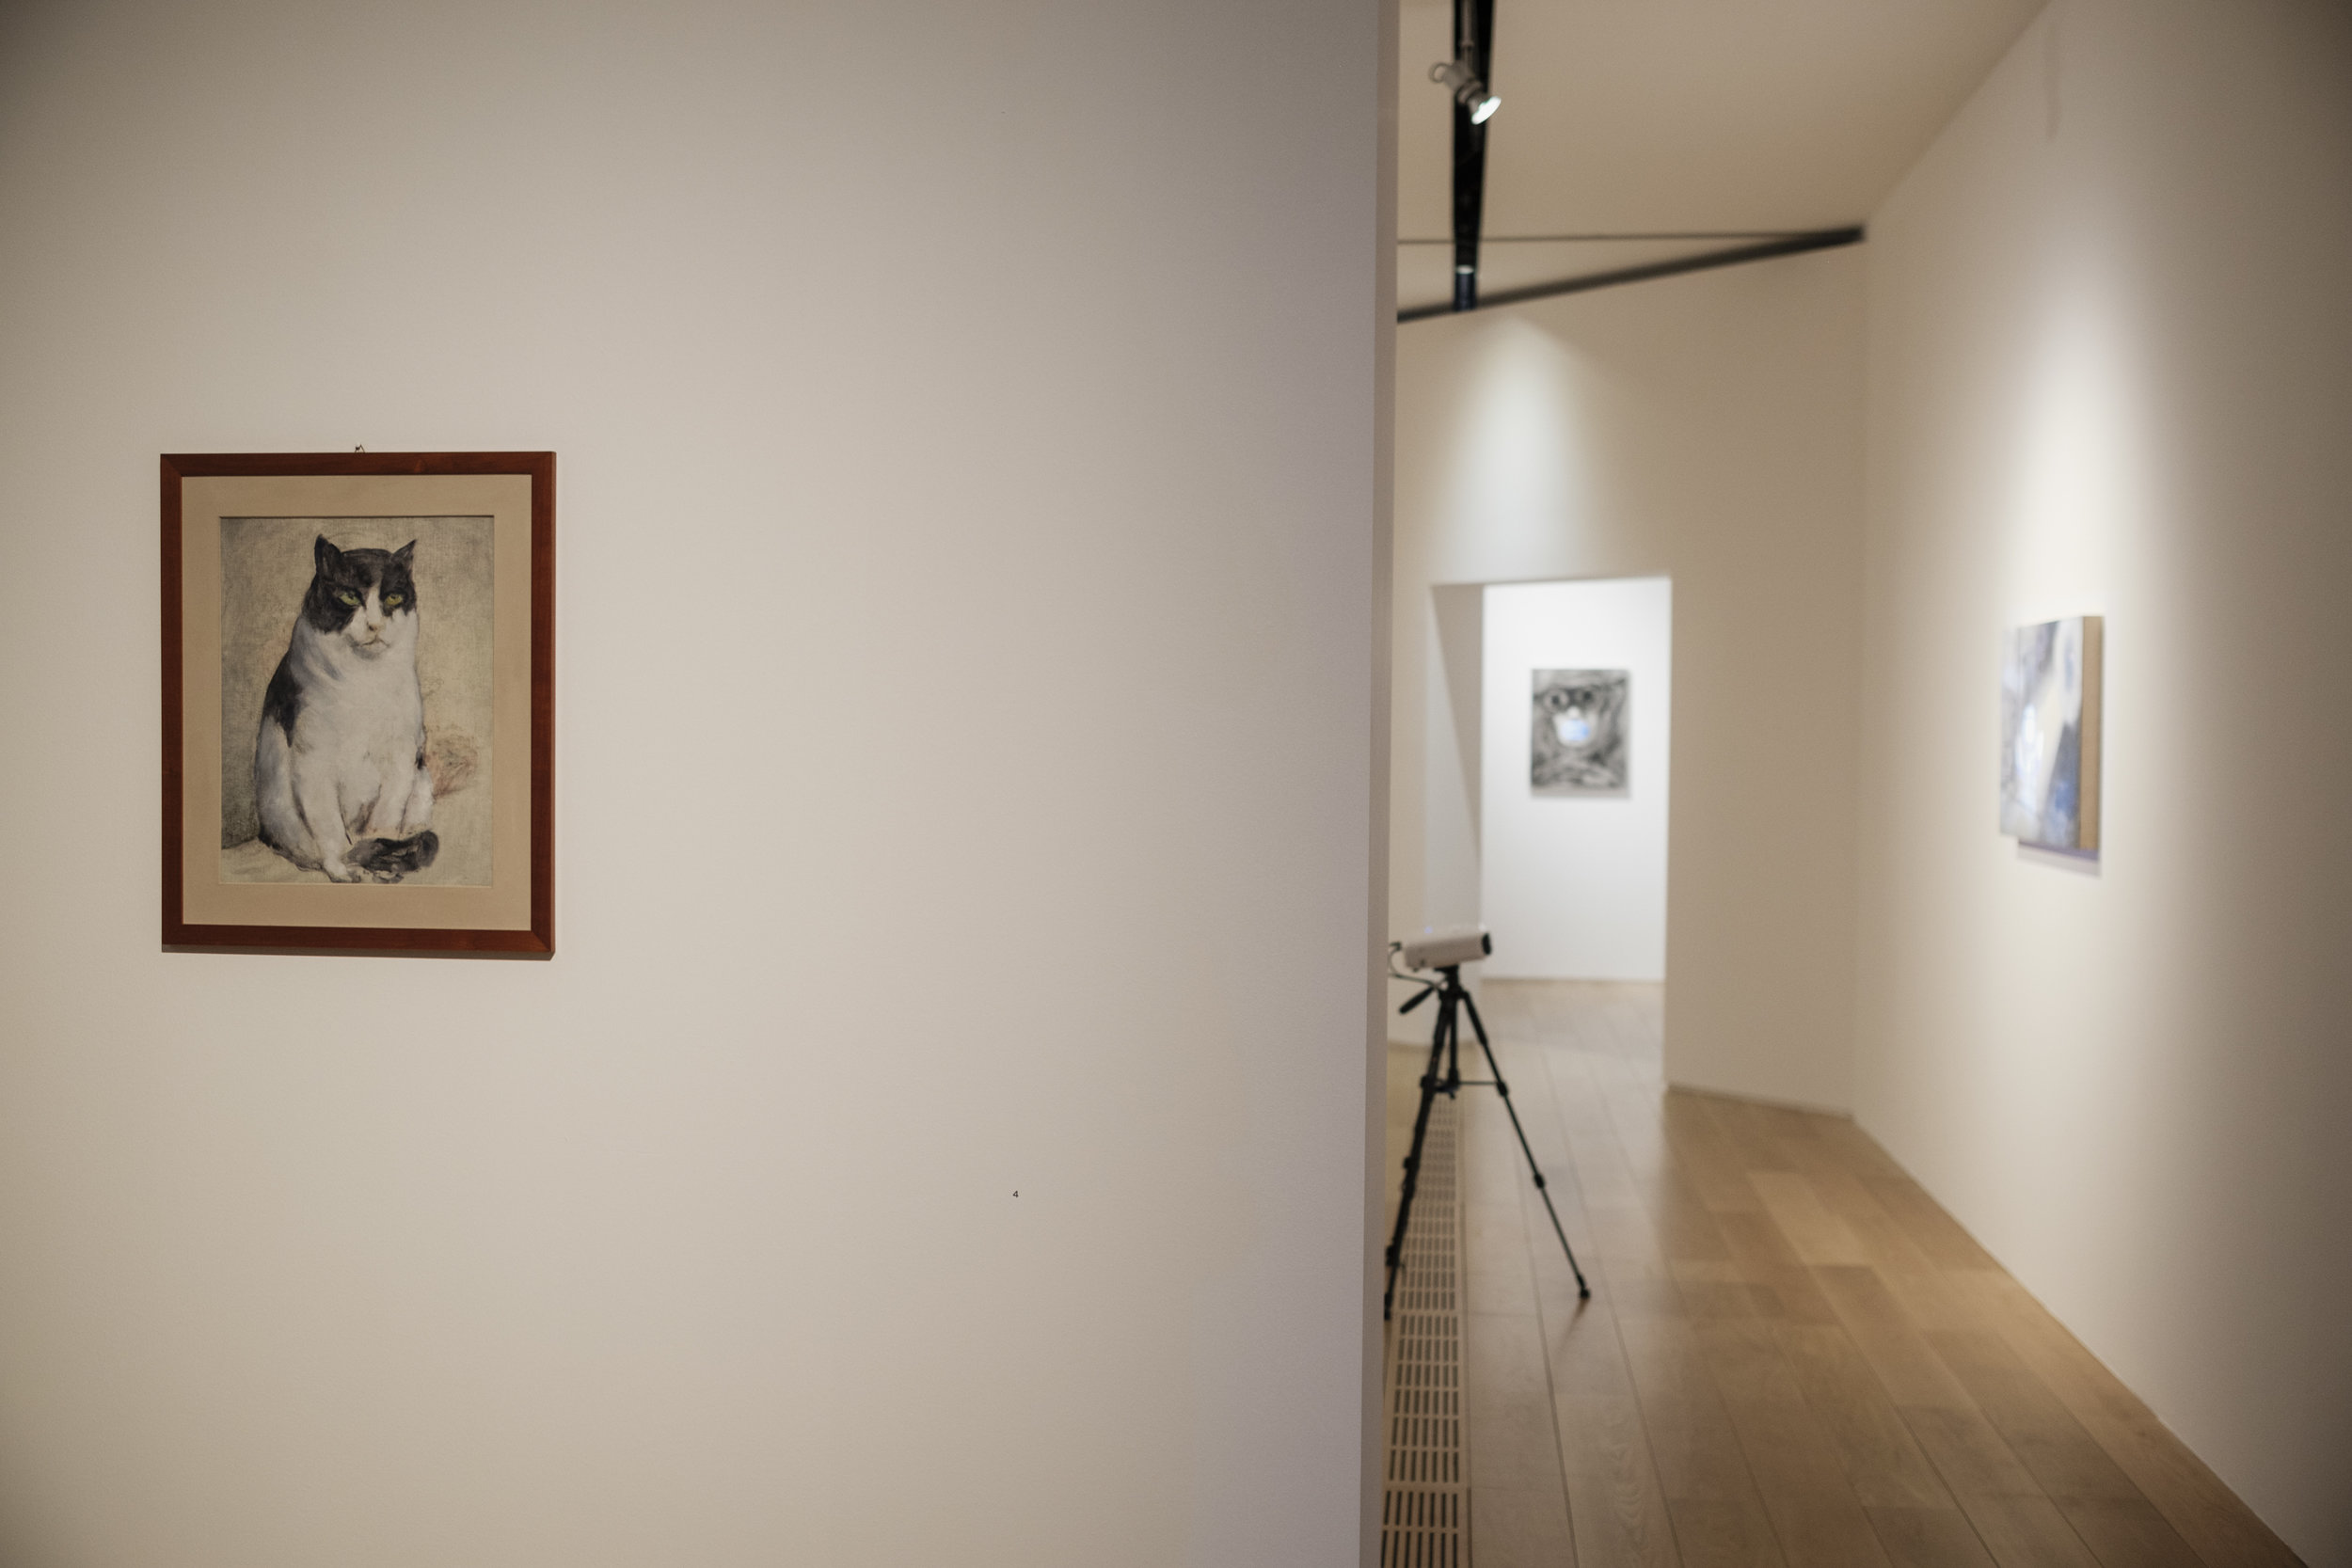 Installation view with Rol's cat